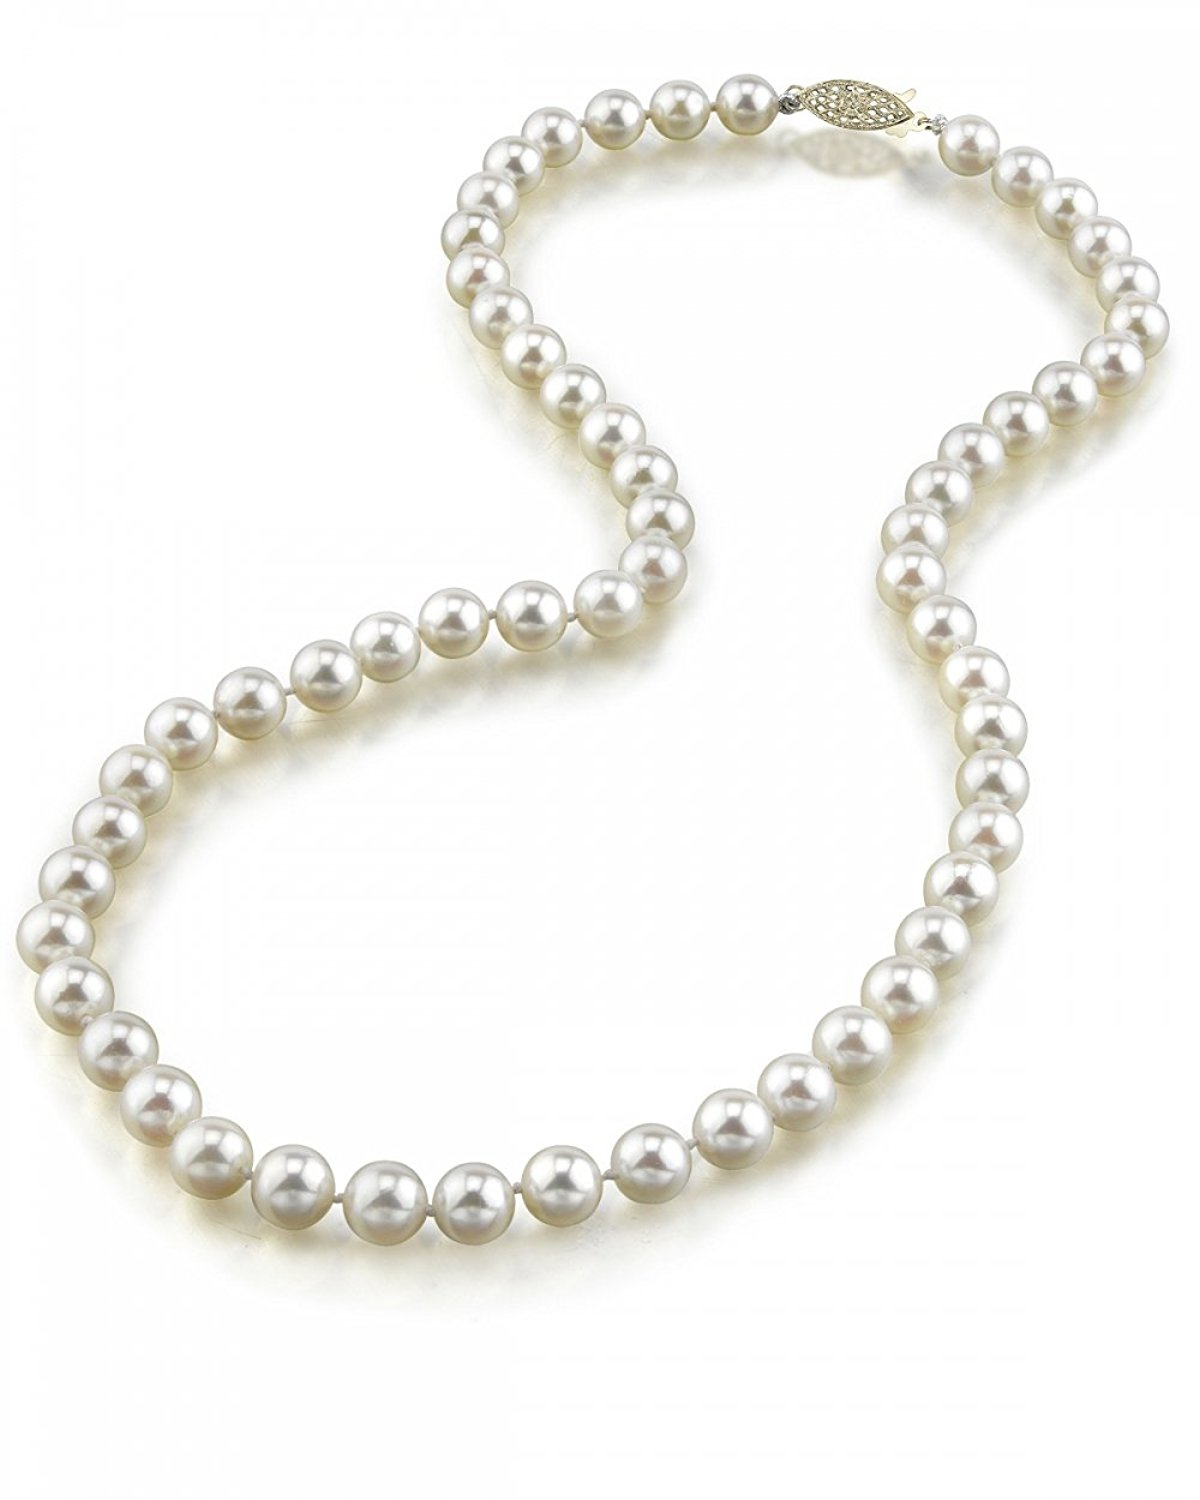 14K Gold 6.5-7.0mm Japanese Akoya White Cultured Pearl Necklace - AA+ Quality, 16 Inch Choker Length